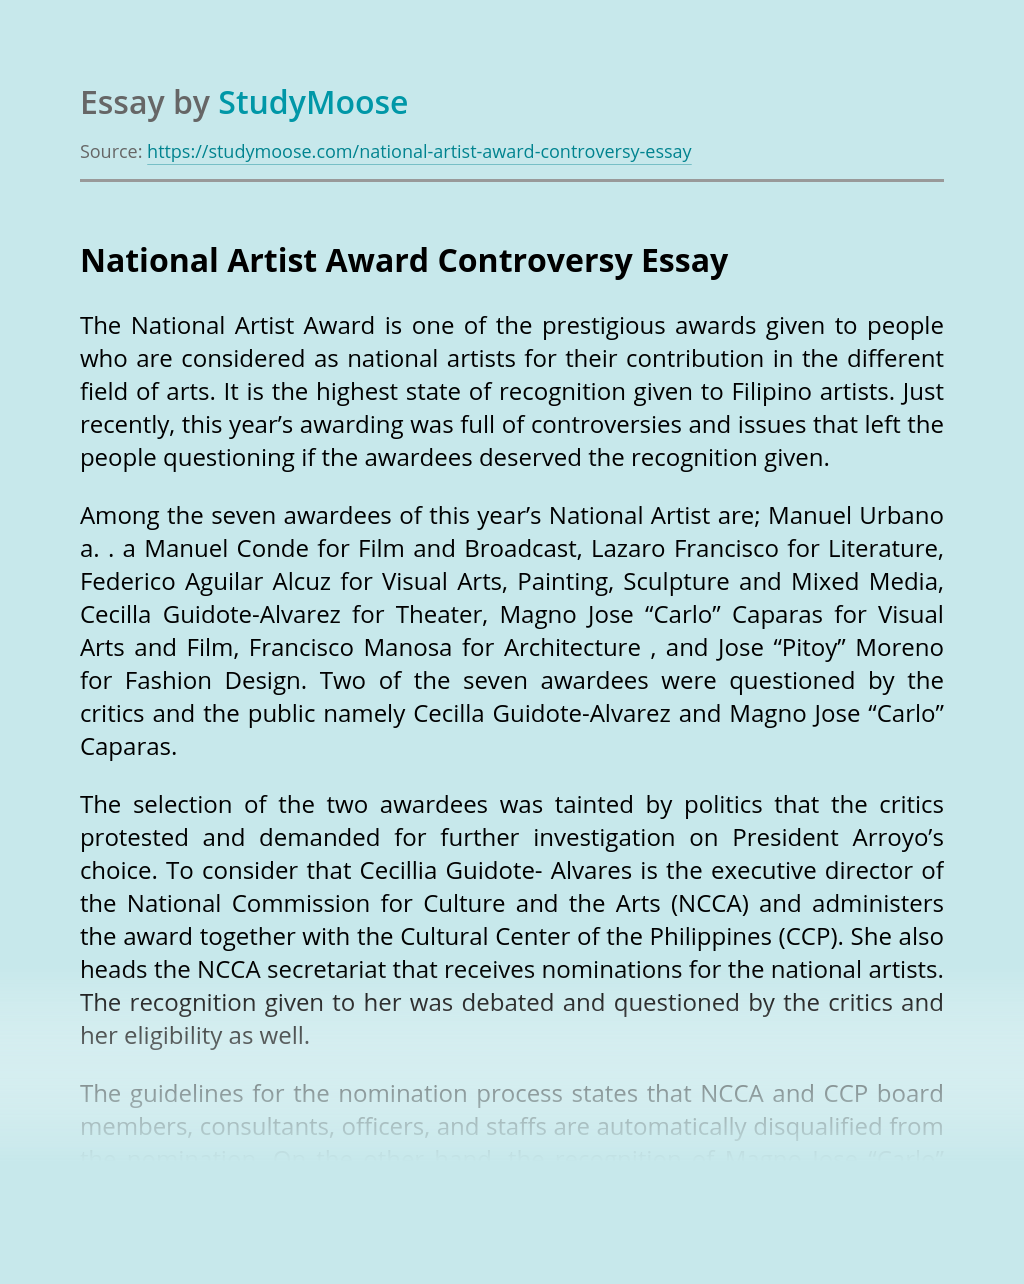 National Artist Award Controversy